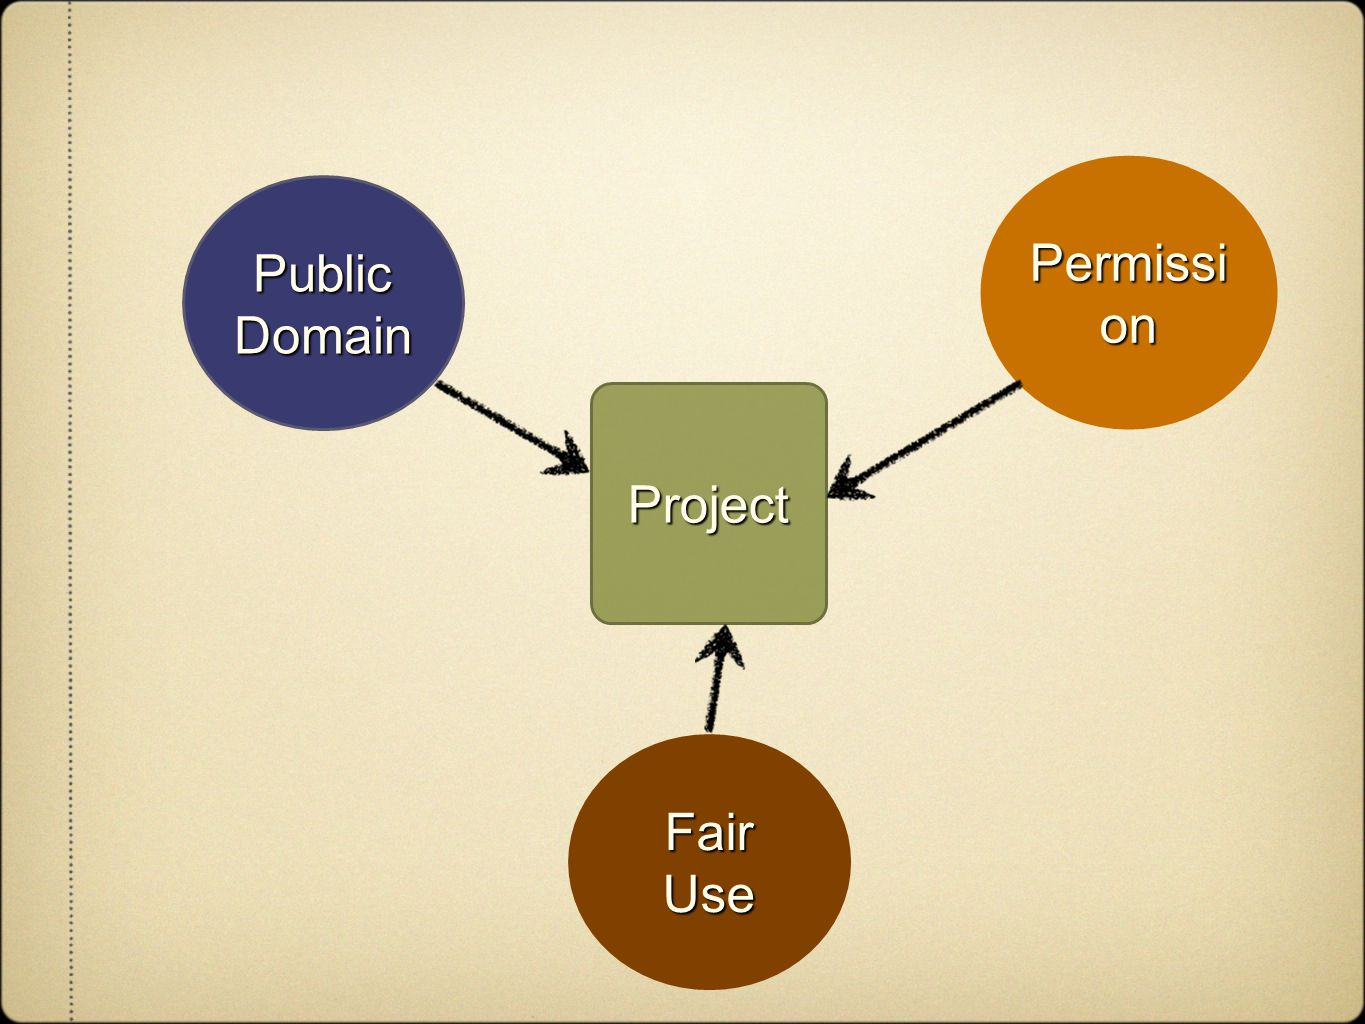 Project PublicDomain Permissi on FairUse